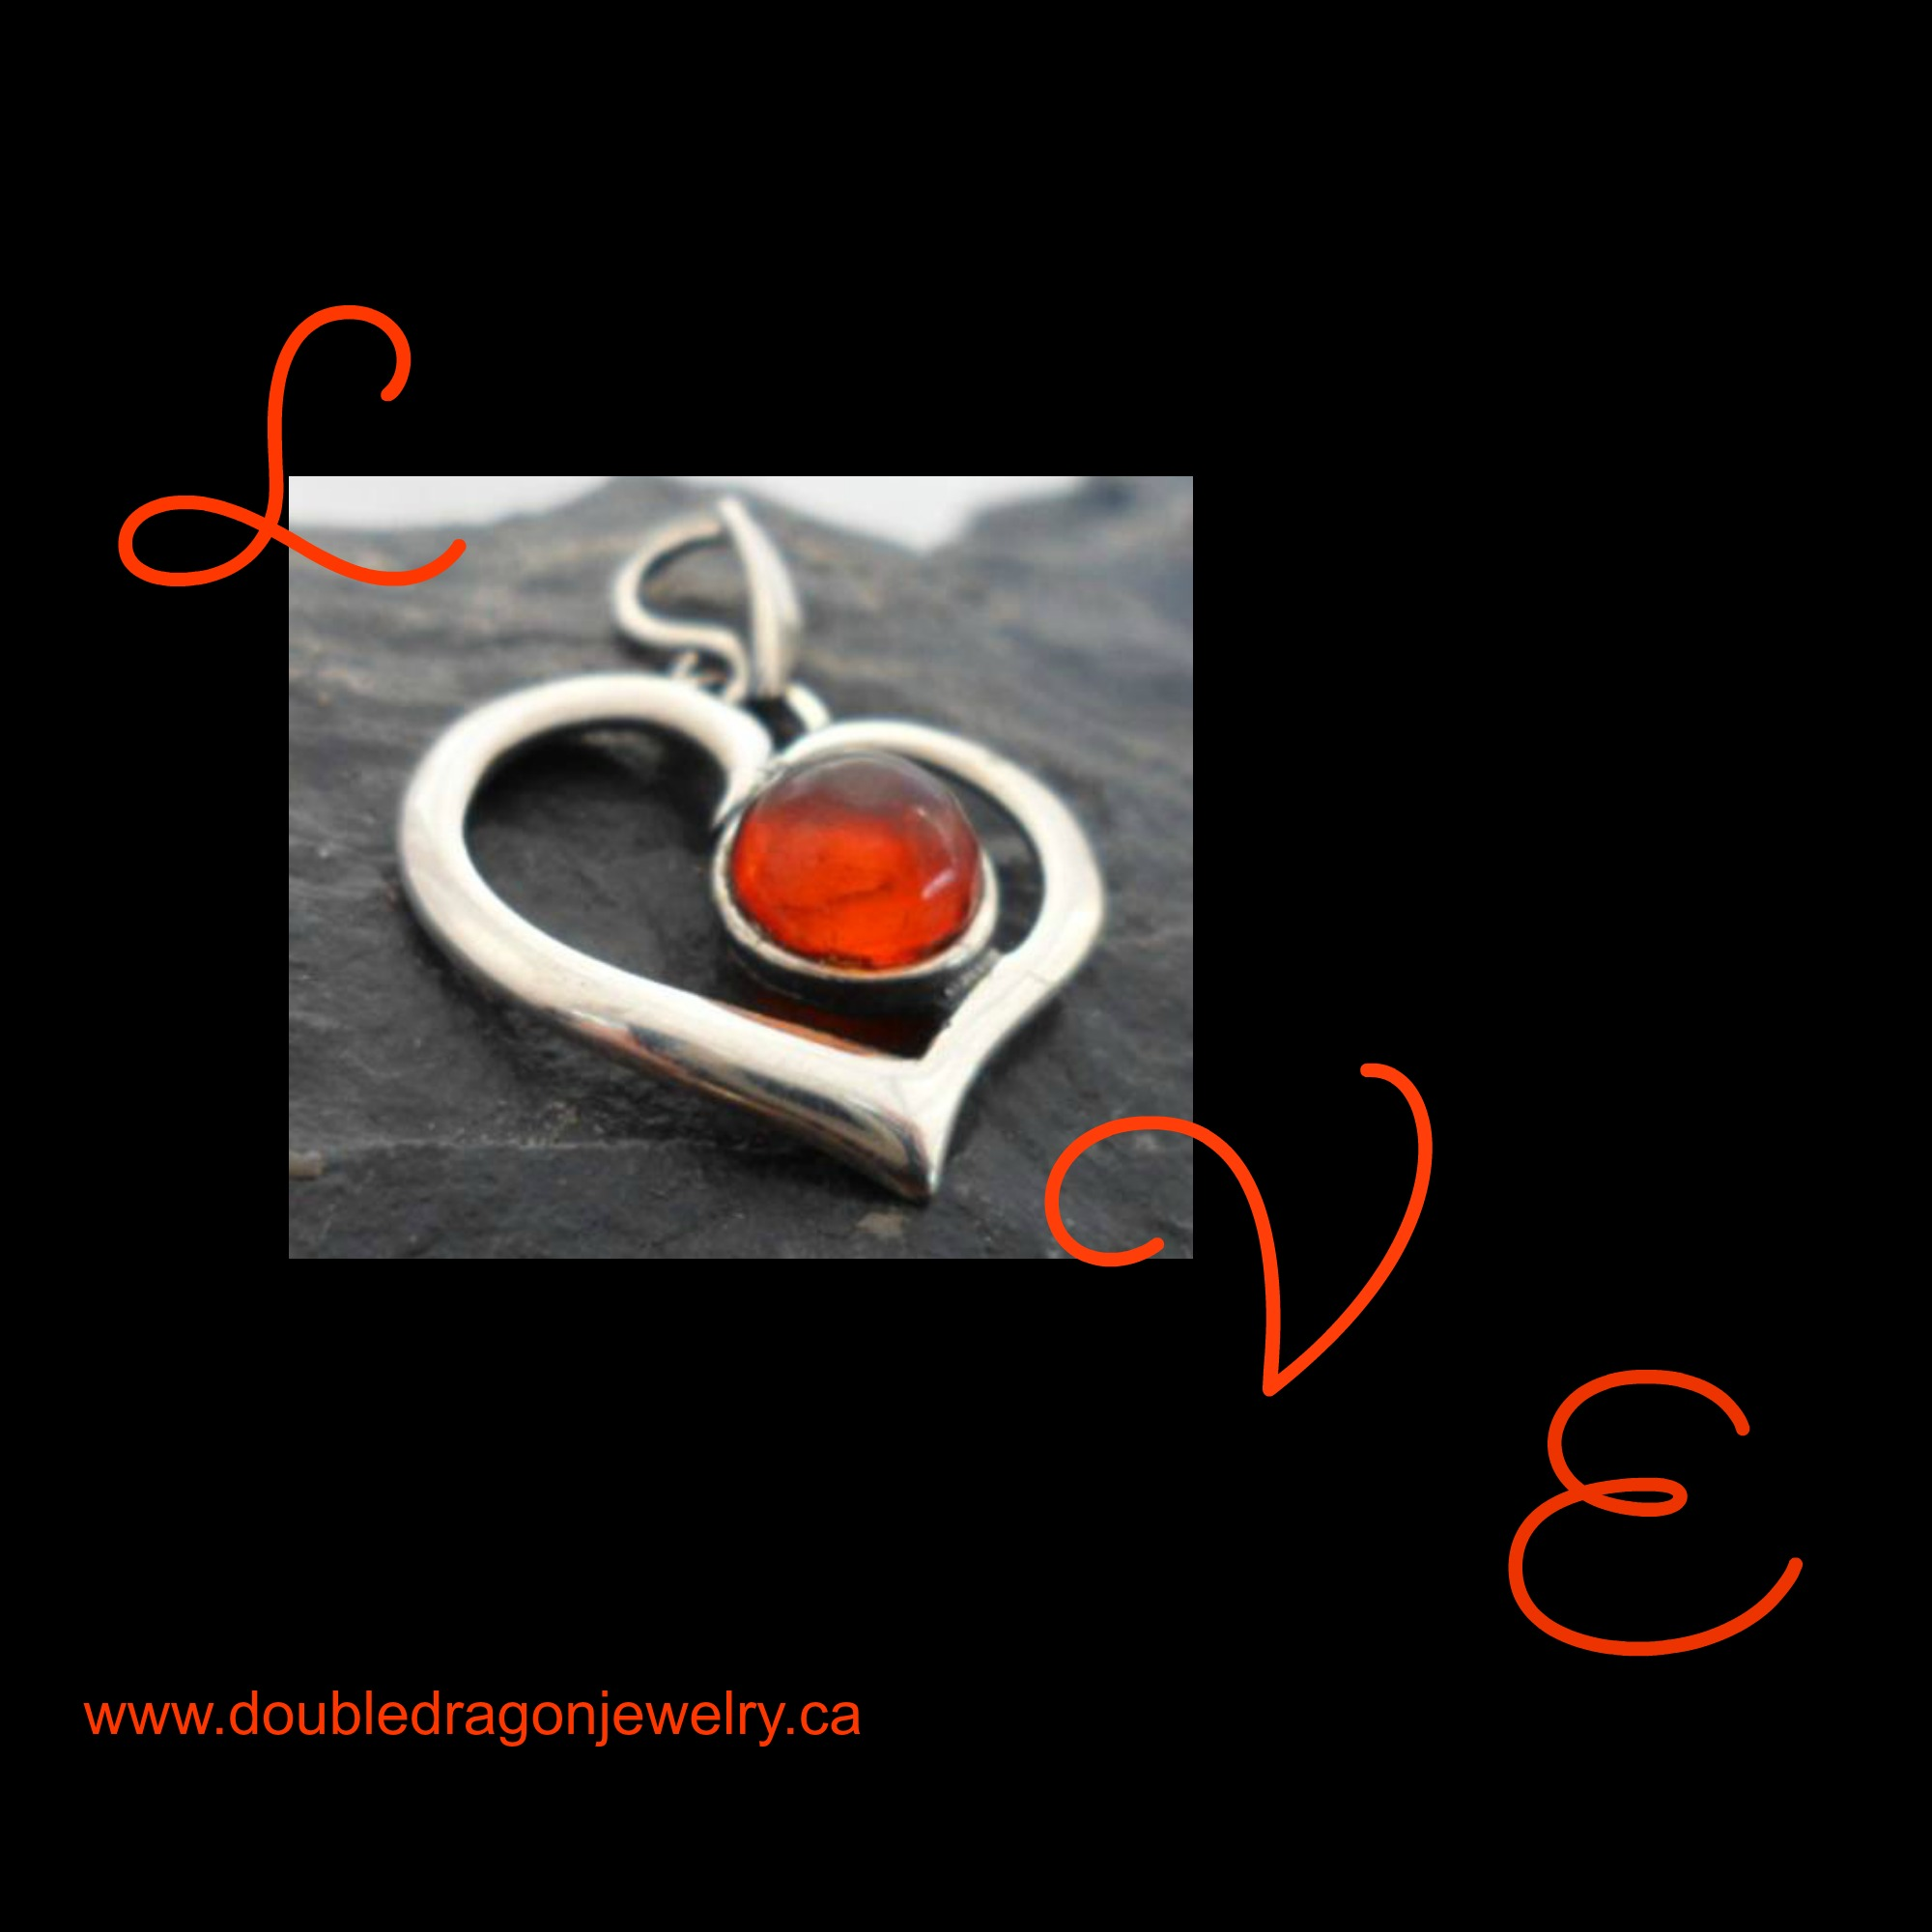 Sterling Silver Heart Pendant with Round Baltic Amber Cabochon